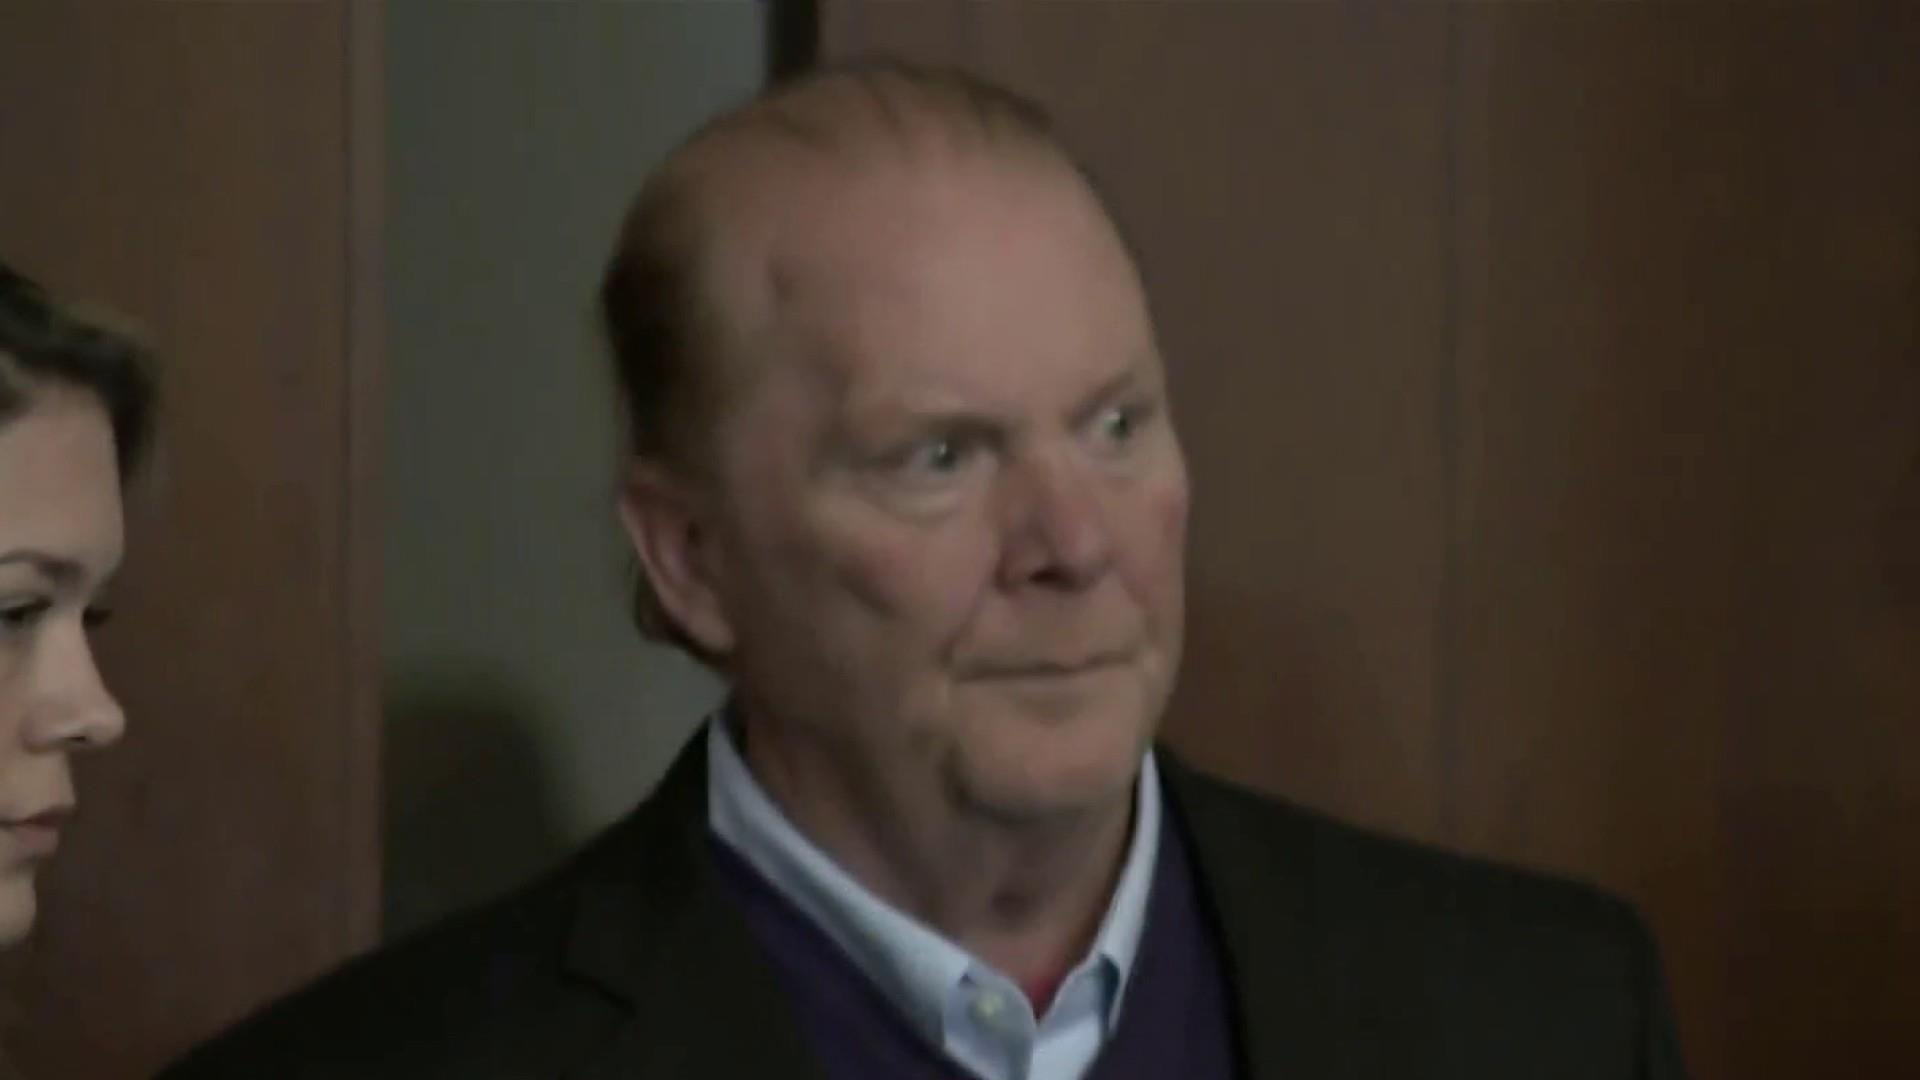 Mario Batali pleads not guilty to assault and battery charge in Boston for allegedly groping, kissing woman